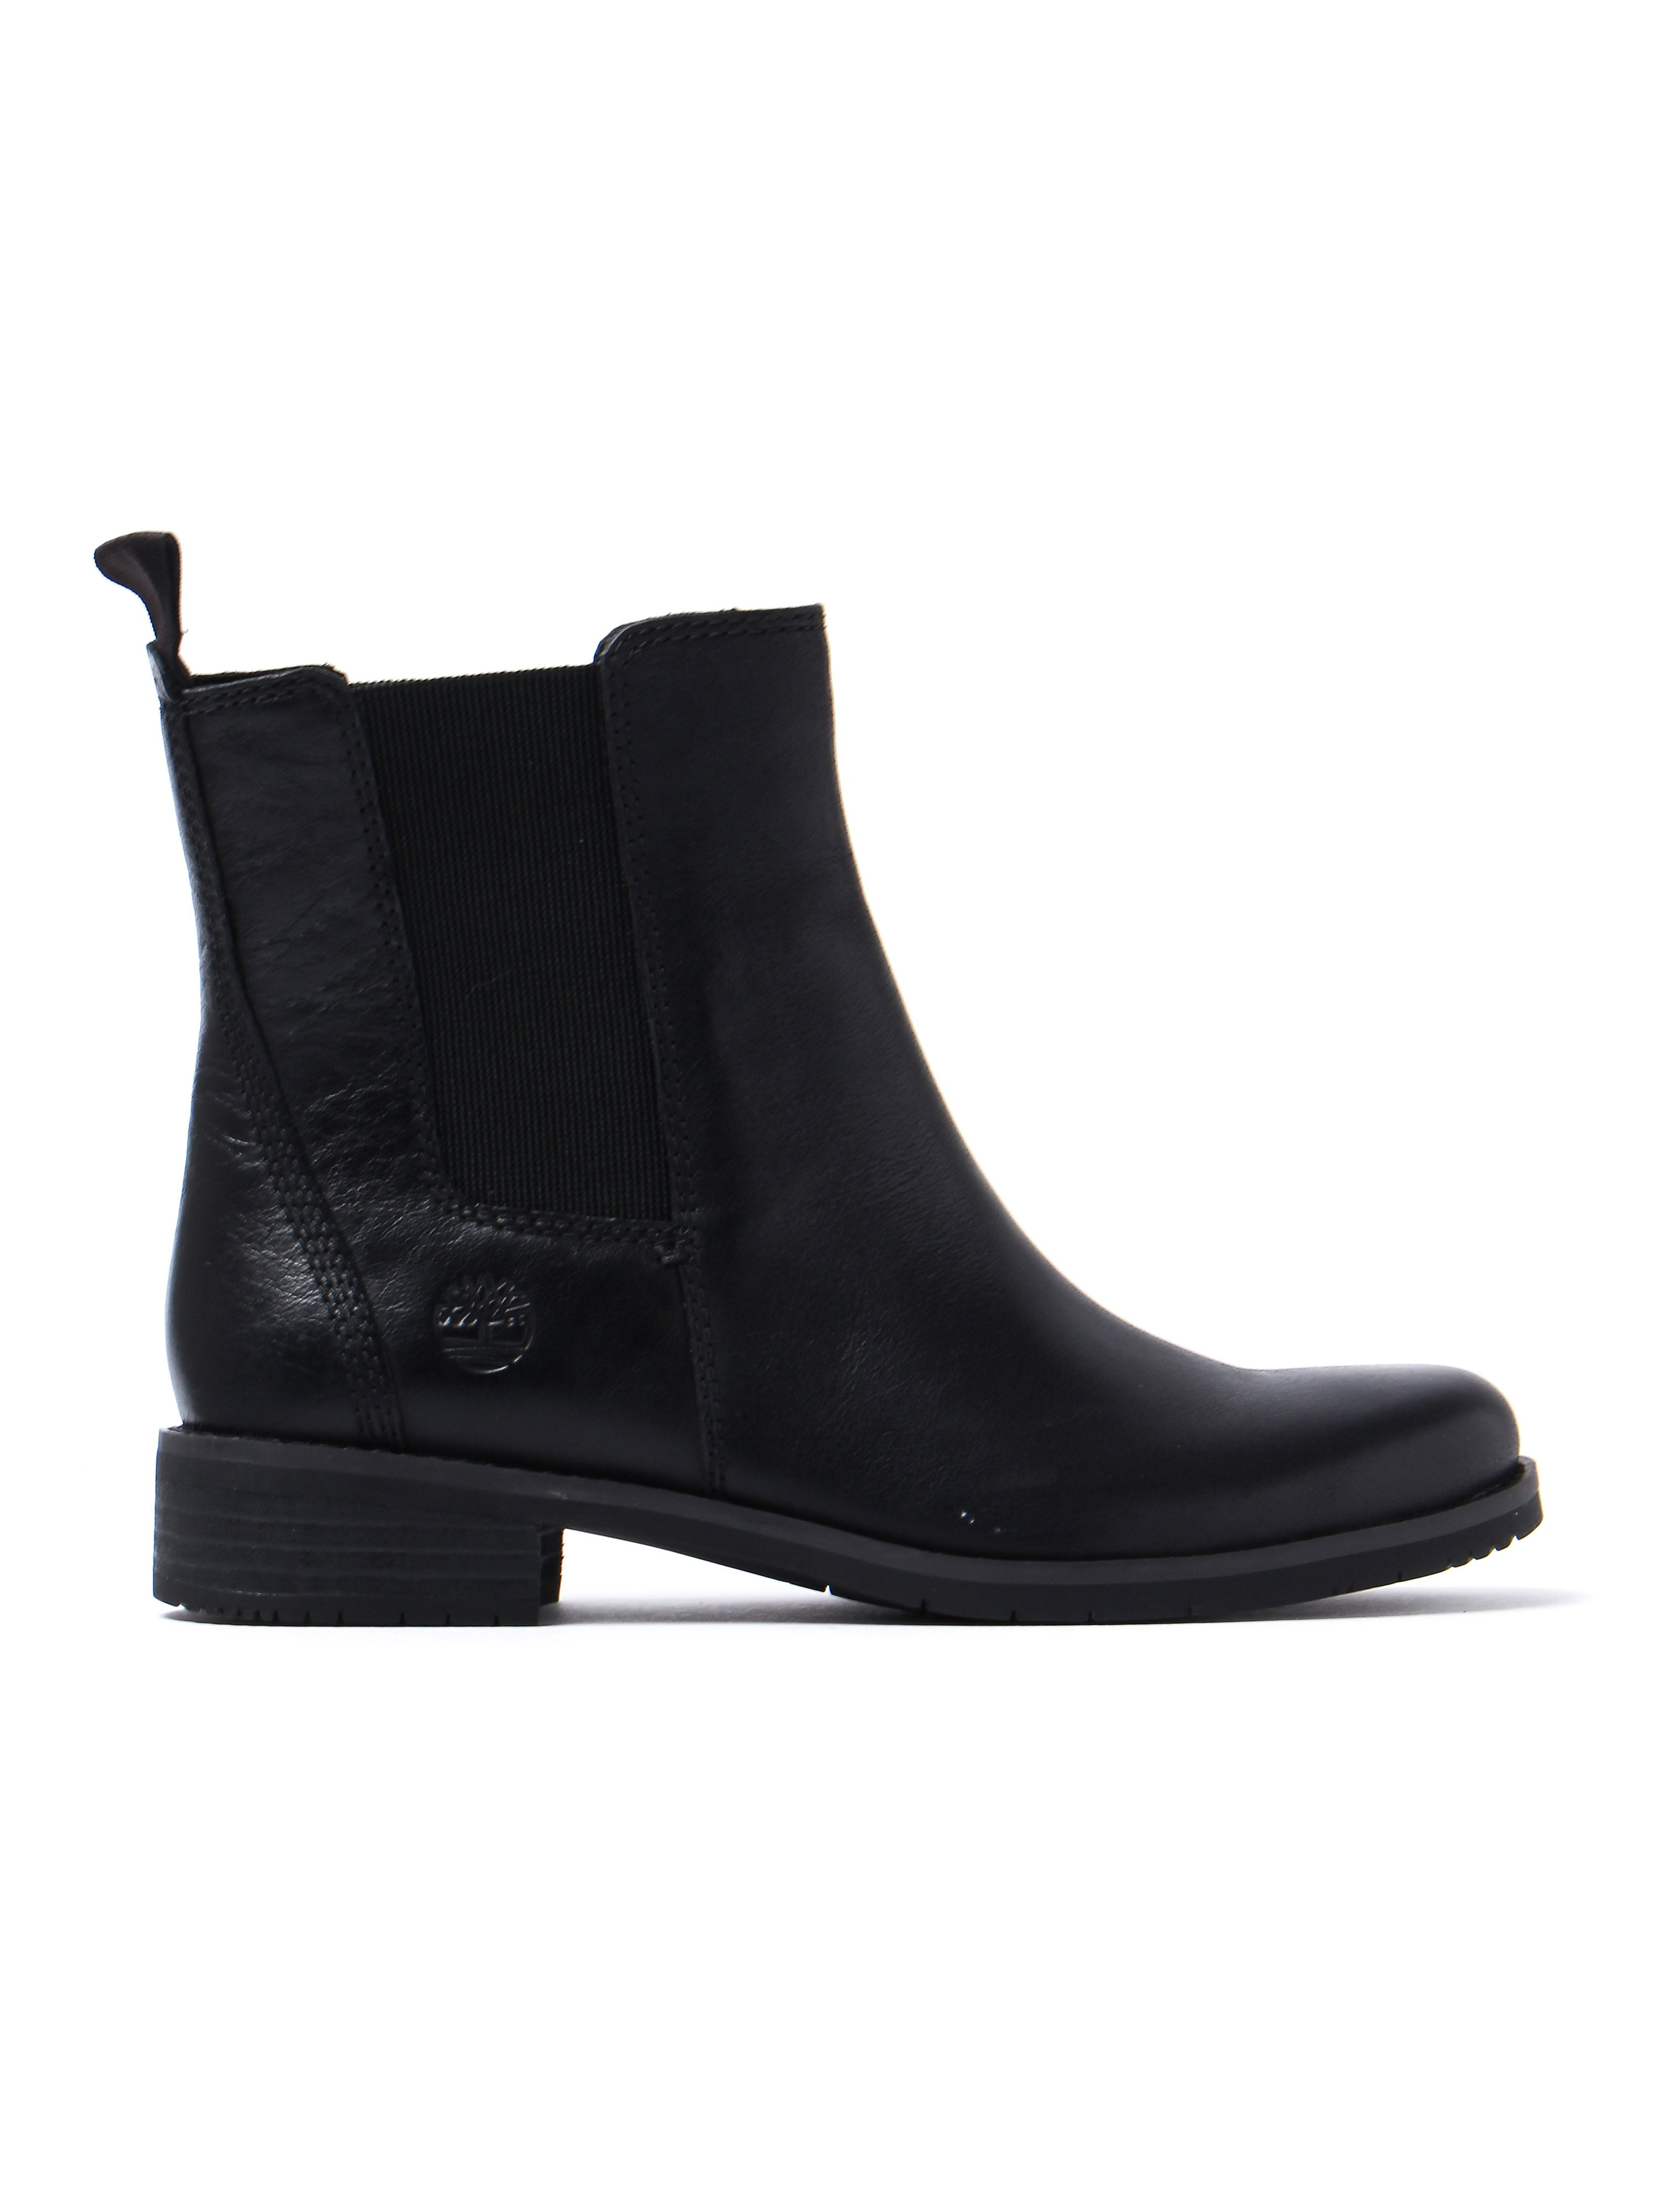 Timberland Women's Venice Park Chelsea Boots – Black Leather